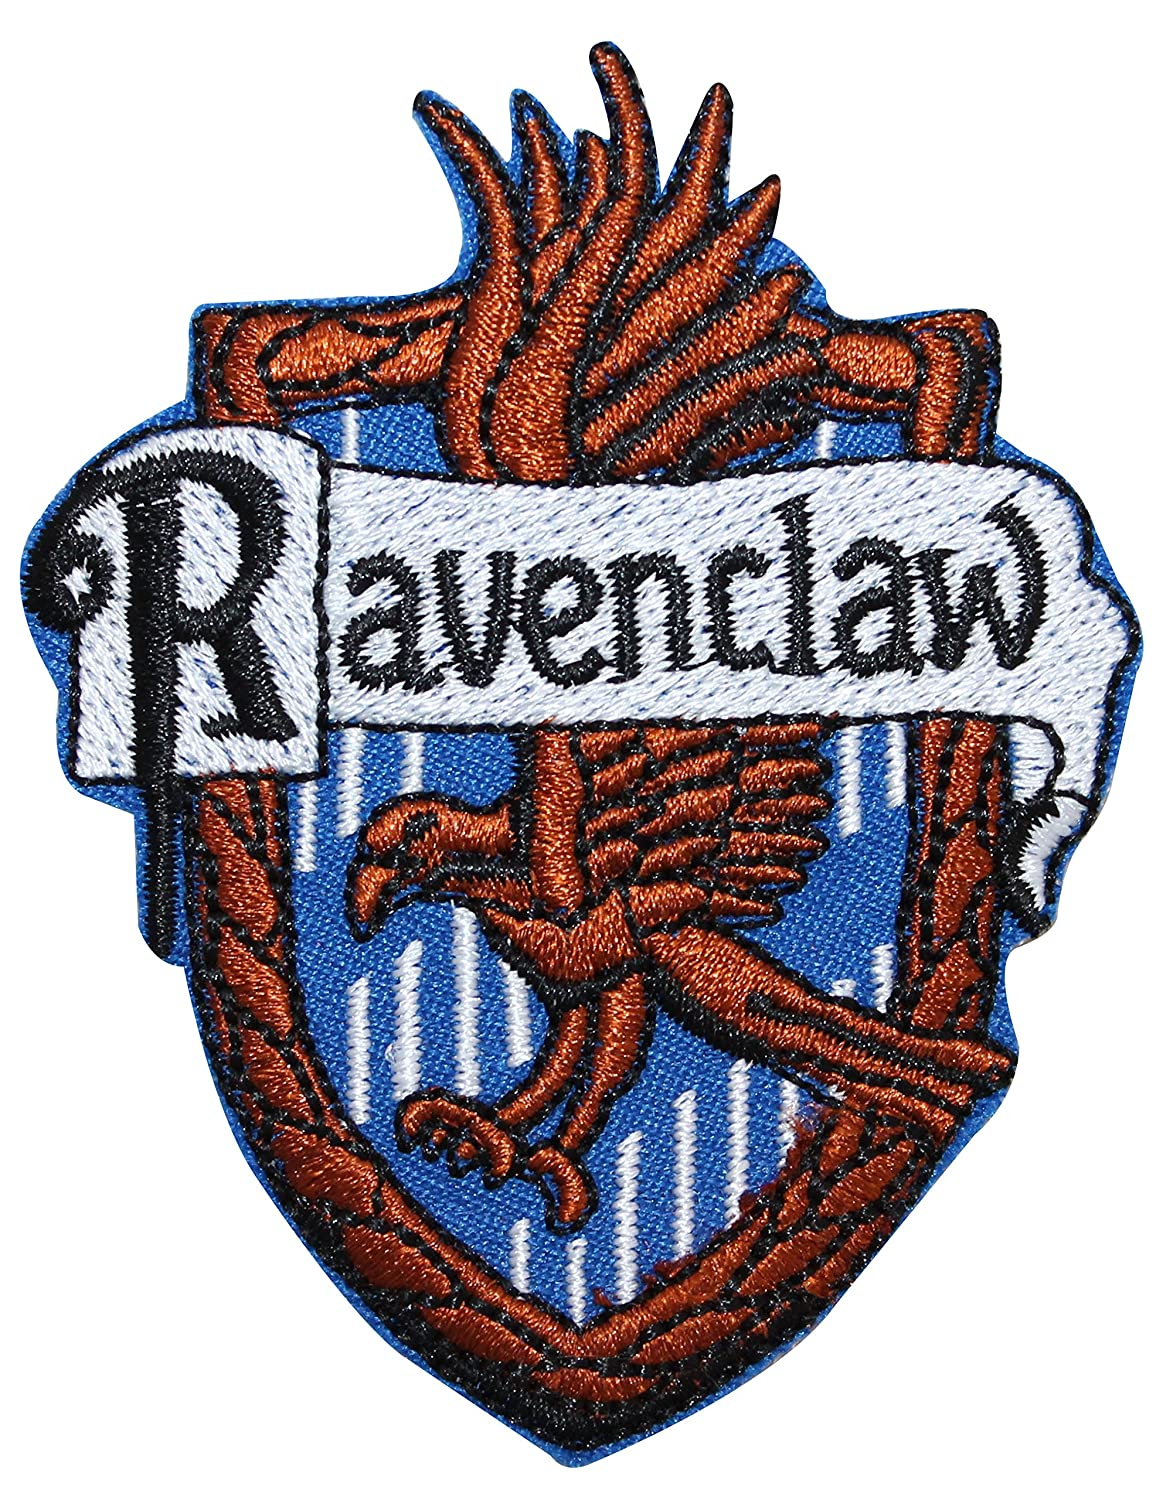 Hufflepuff Crest Coloring Page Ravenclaw Hogwarts' House